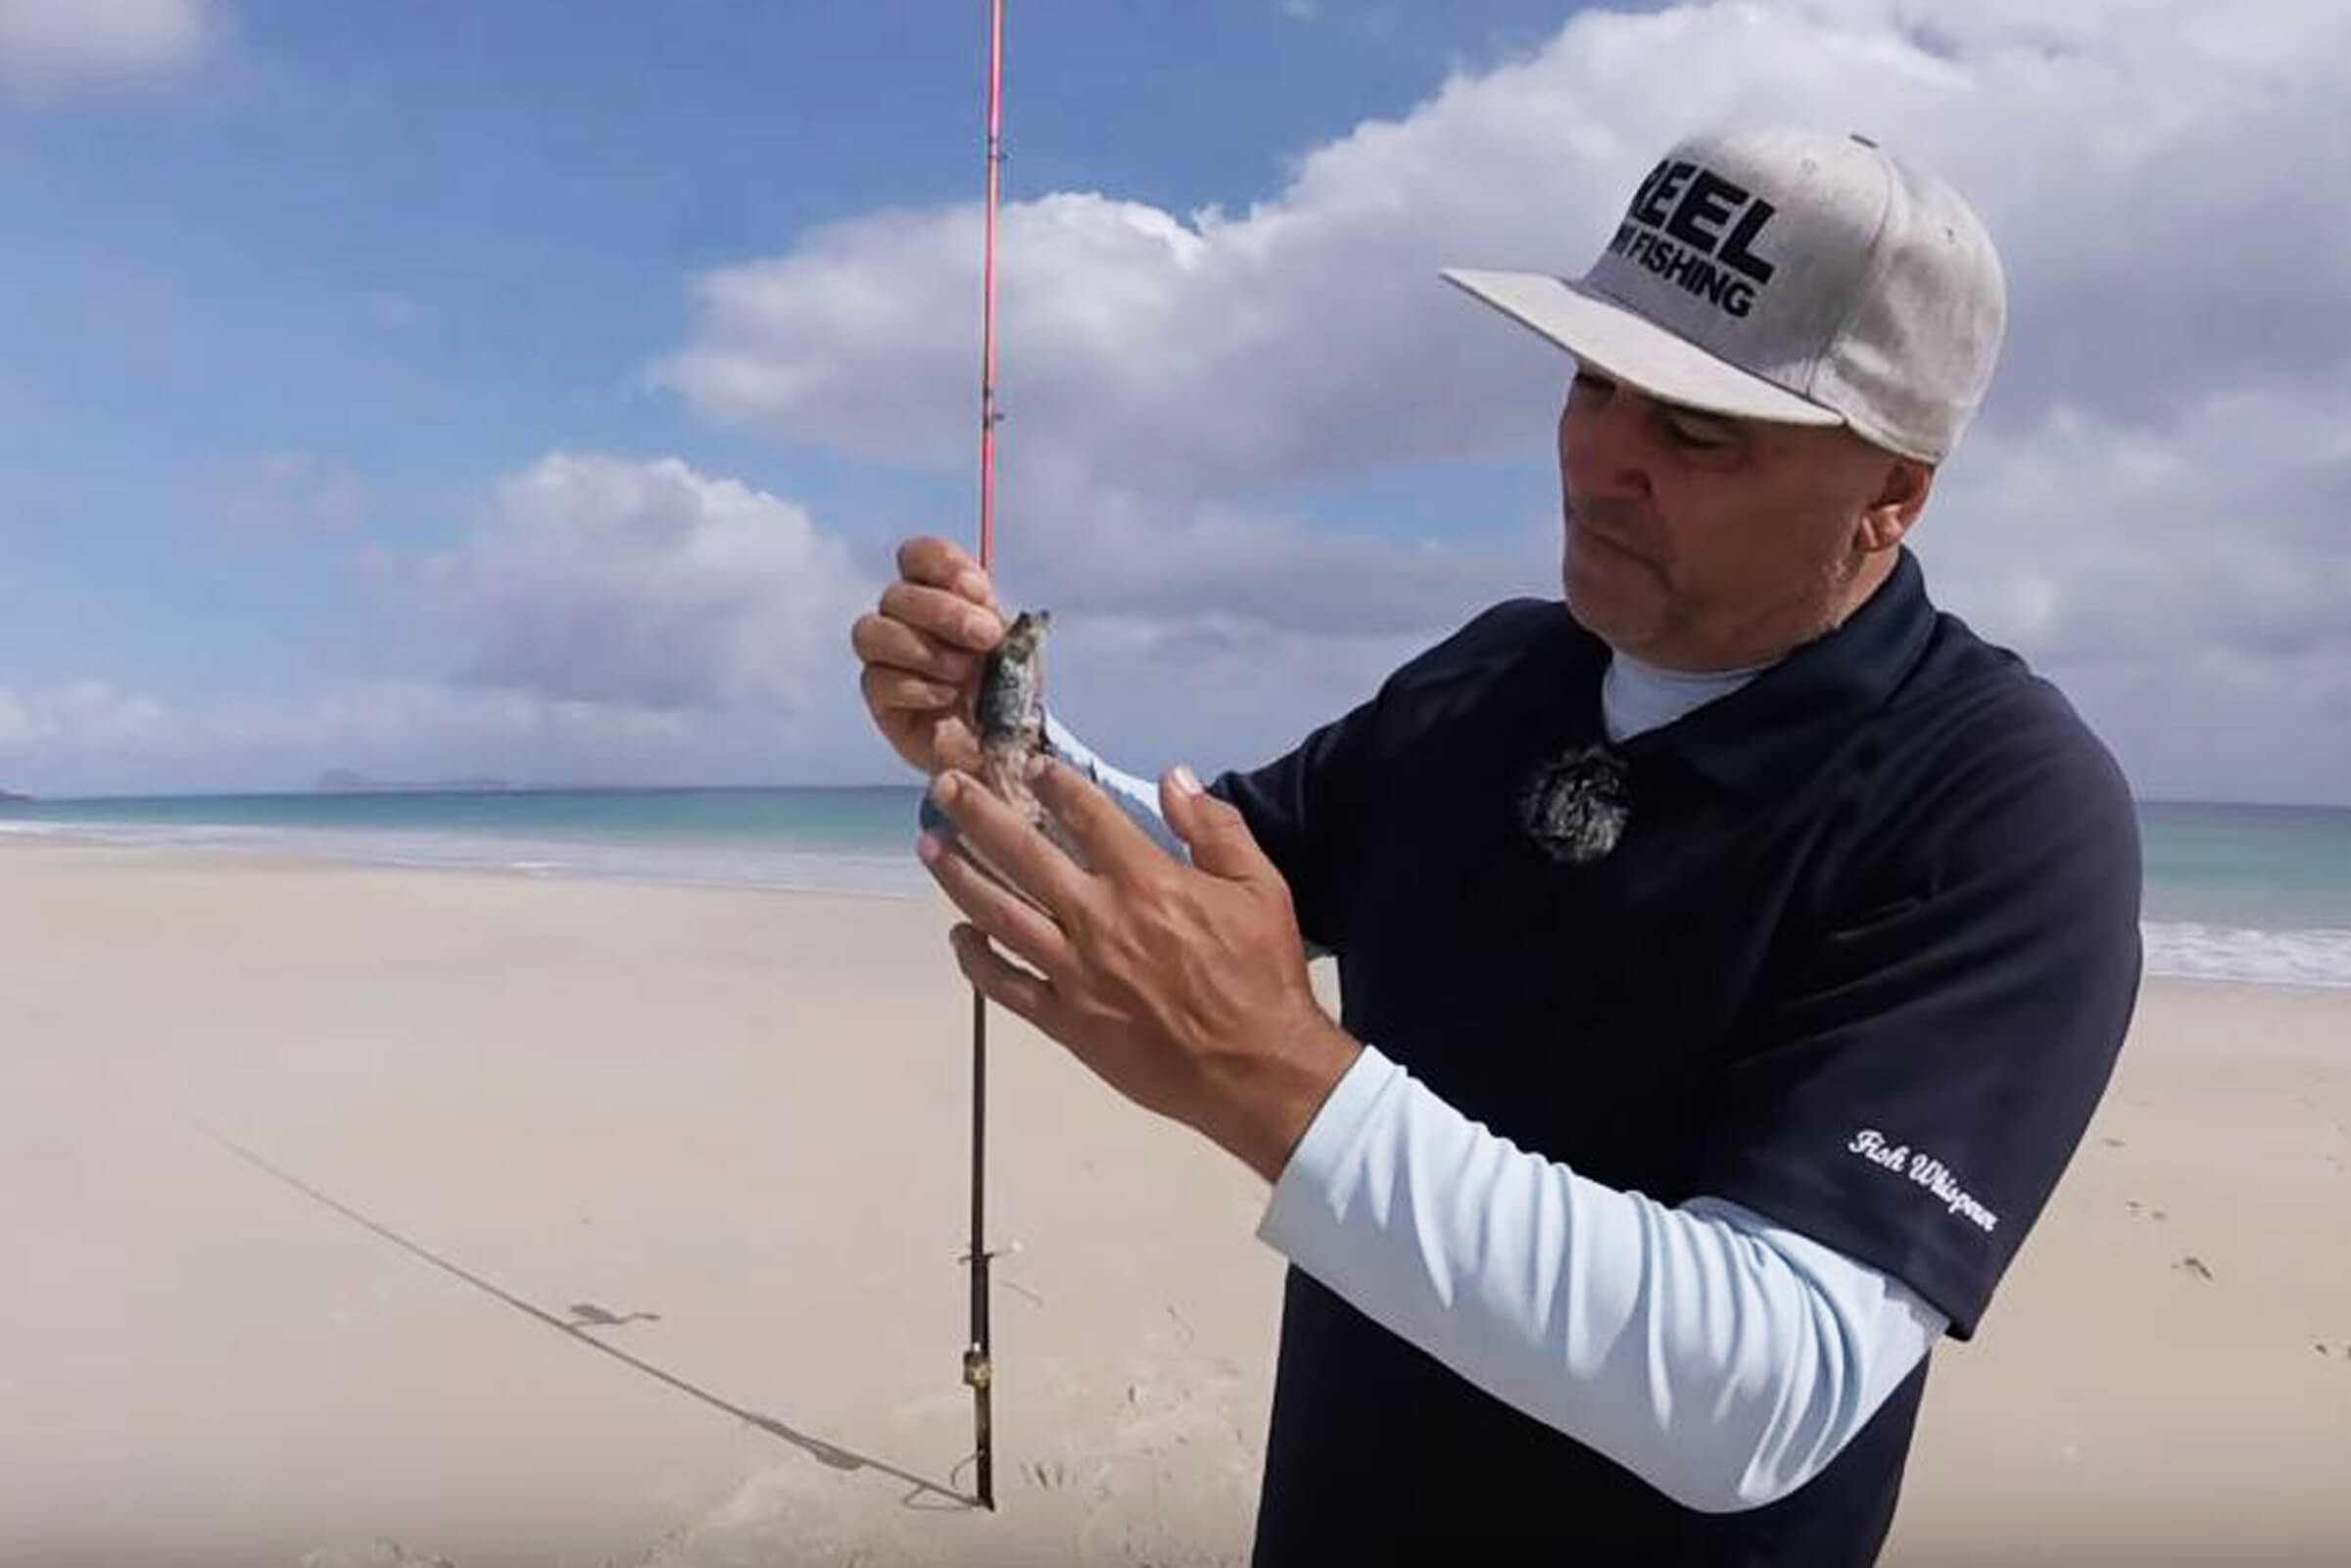 Hints and tips for surf casting off the sand